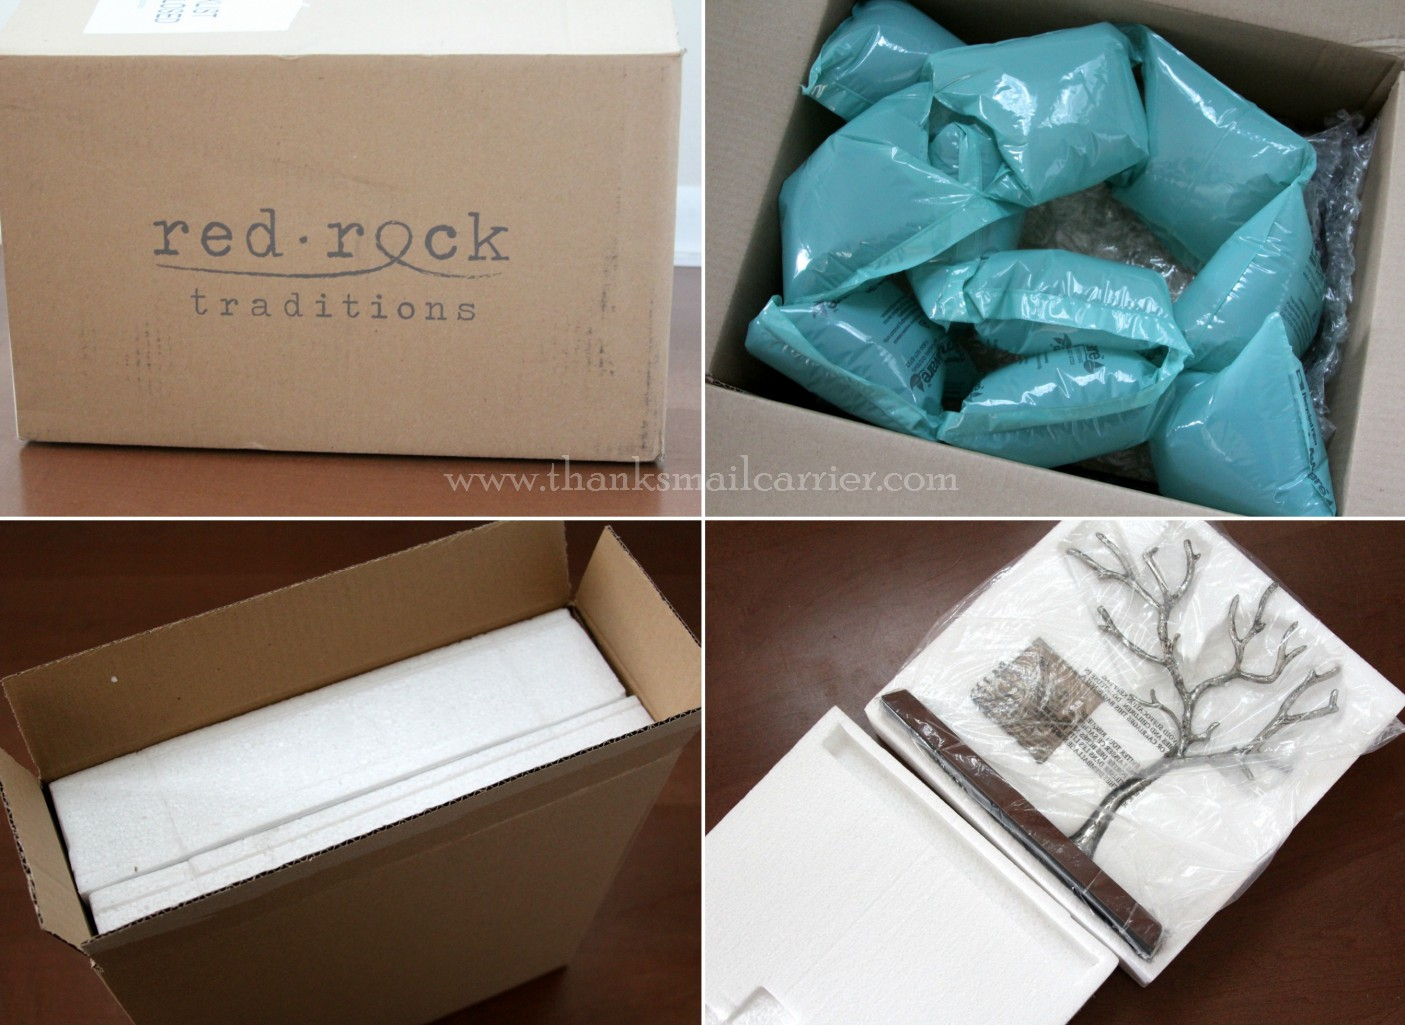 red rock traditions packaging